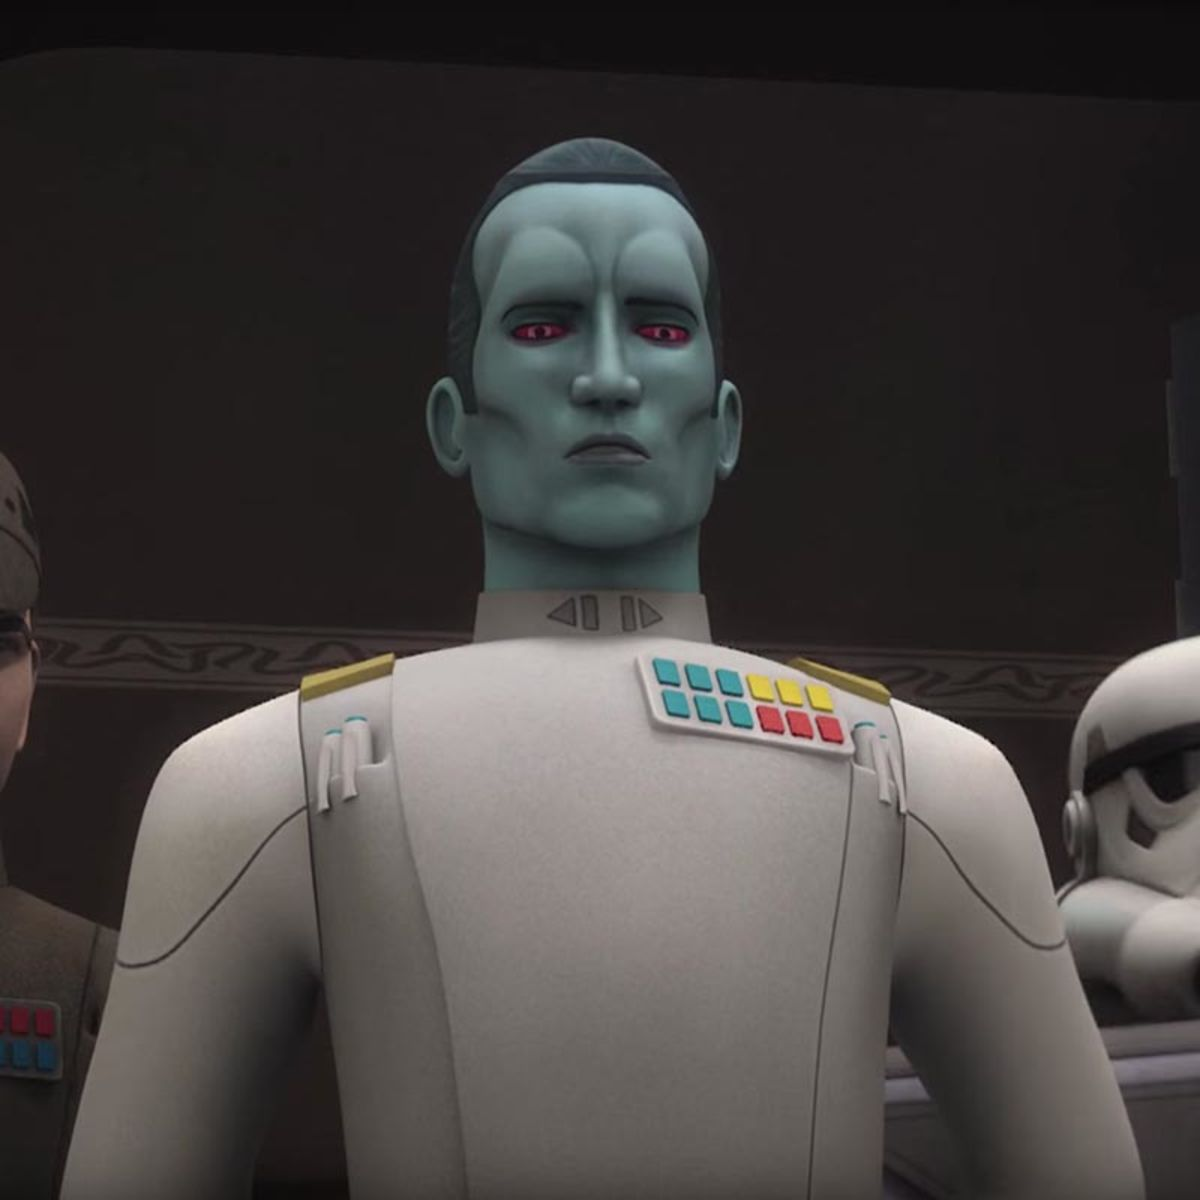 Syfy - Star Wars Rebels teases more Thrawn for Season 4 | Star Wars ...